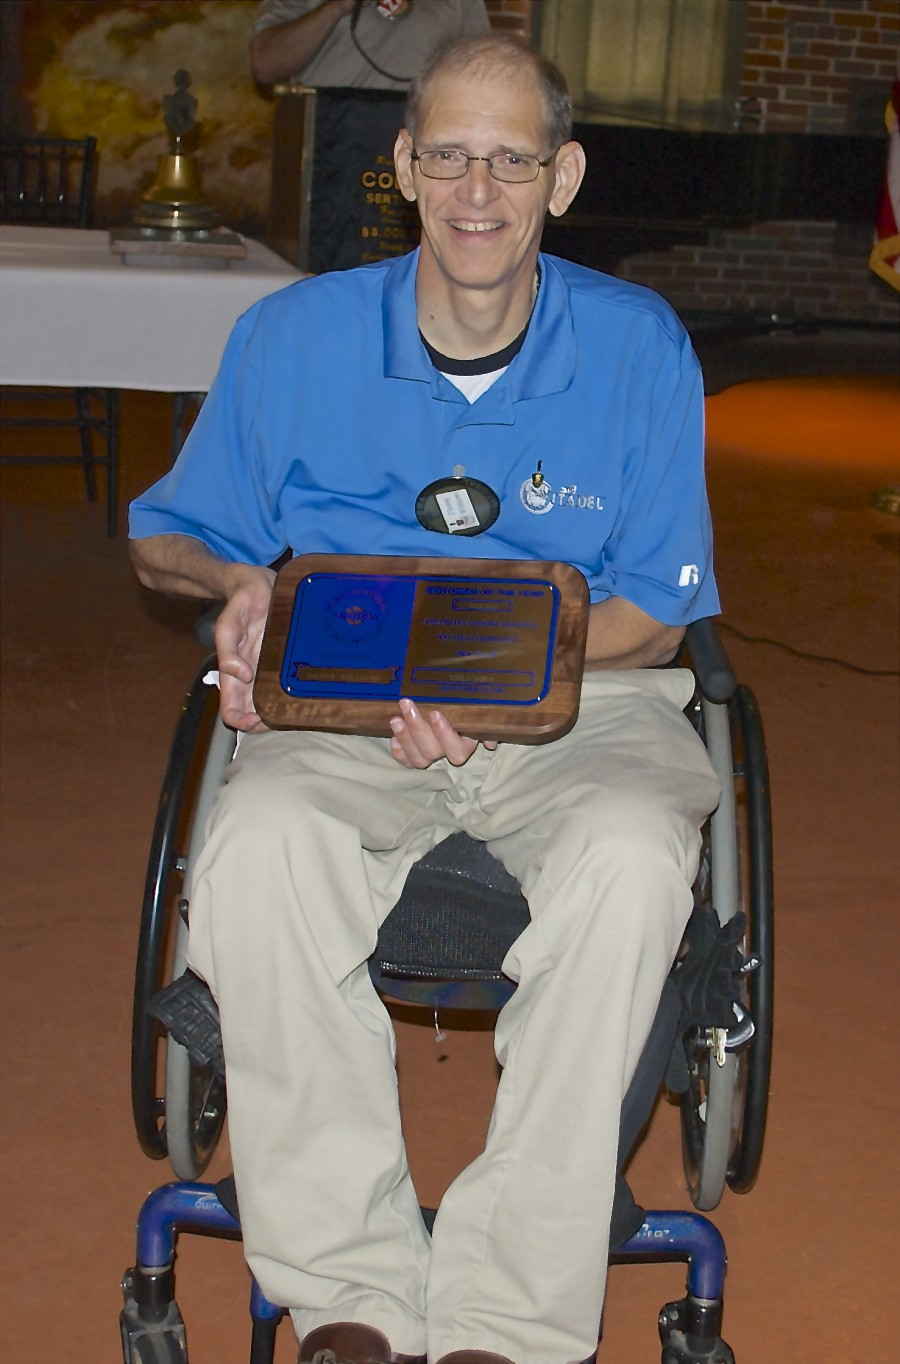 Danny Williams was recognized as the 2013 Sertoman of the Year